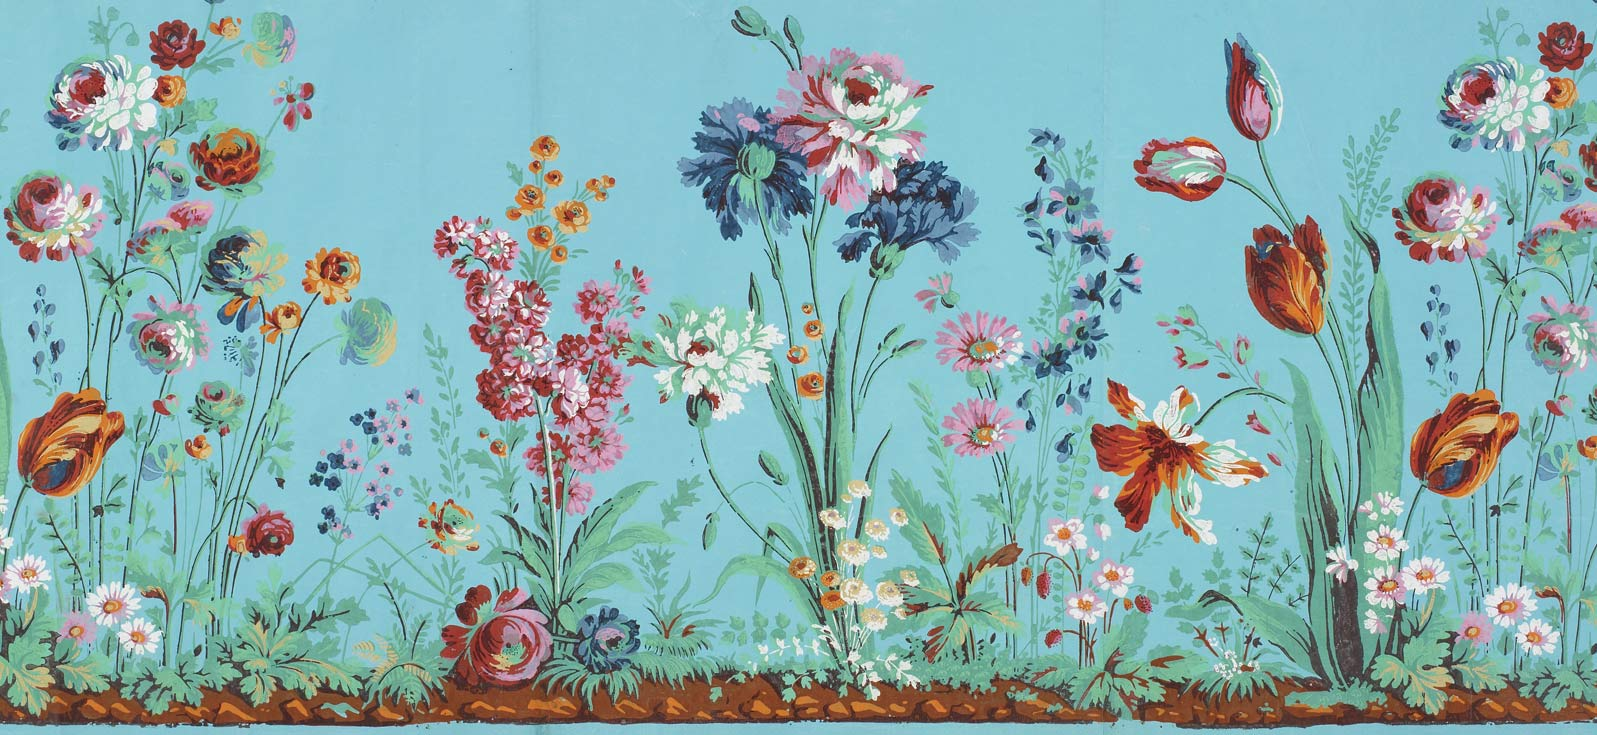 Floral Patterned Wallpaper, late 18th century, JB Reveillon Hand Block Printing